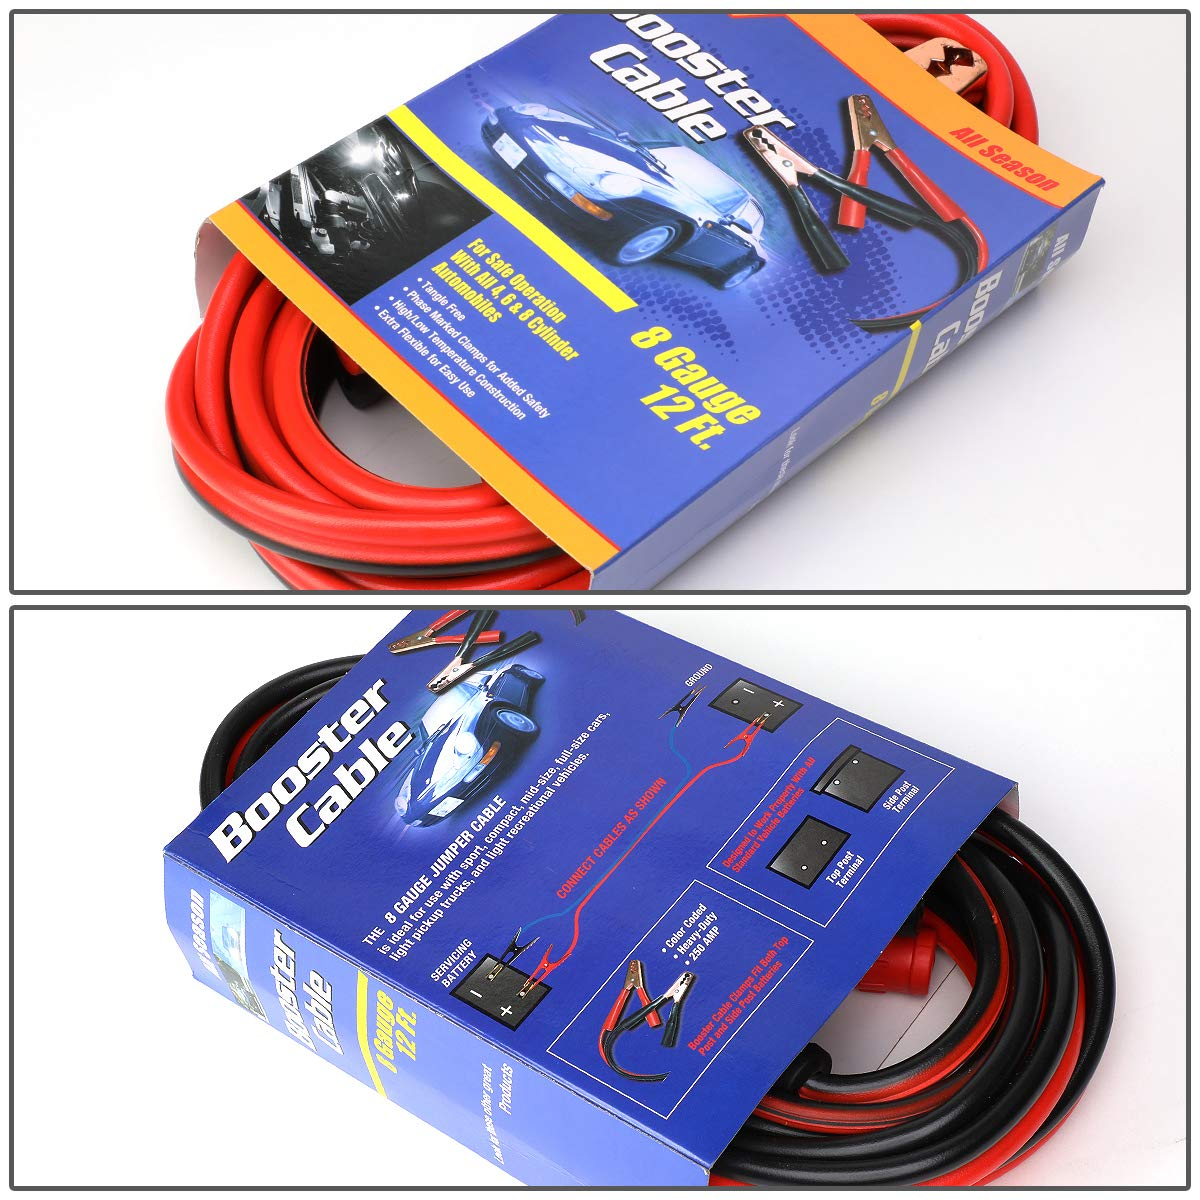 Heavy Duty 20Ft 2Gauge Booster Cable Power Jumper 600AMP Emergency Battery Start Car//Motorcycle